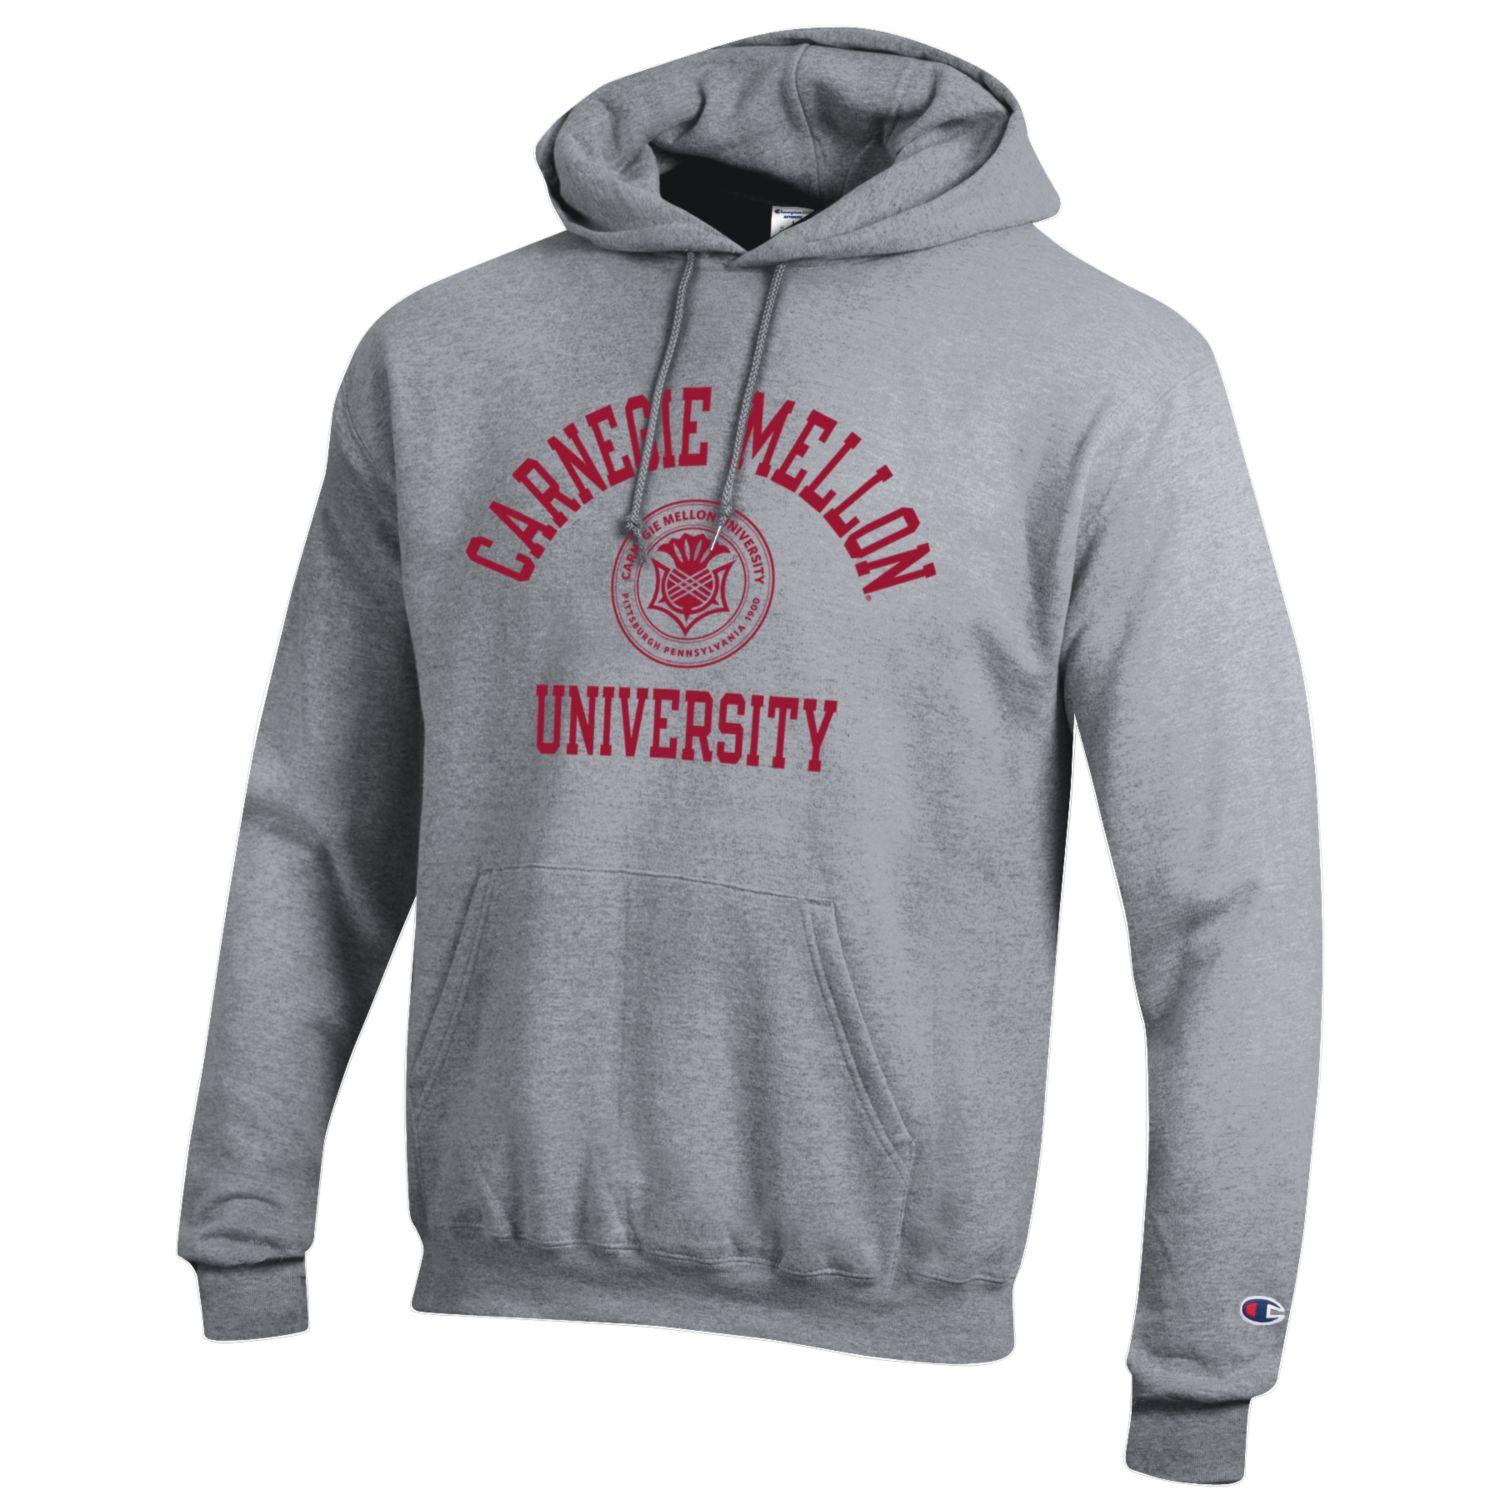 Image For <hood>Champion Powerblend CMU Seal Hoodie: Oxford